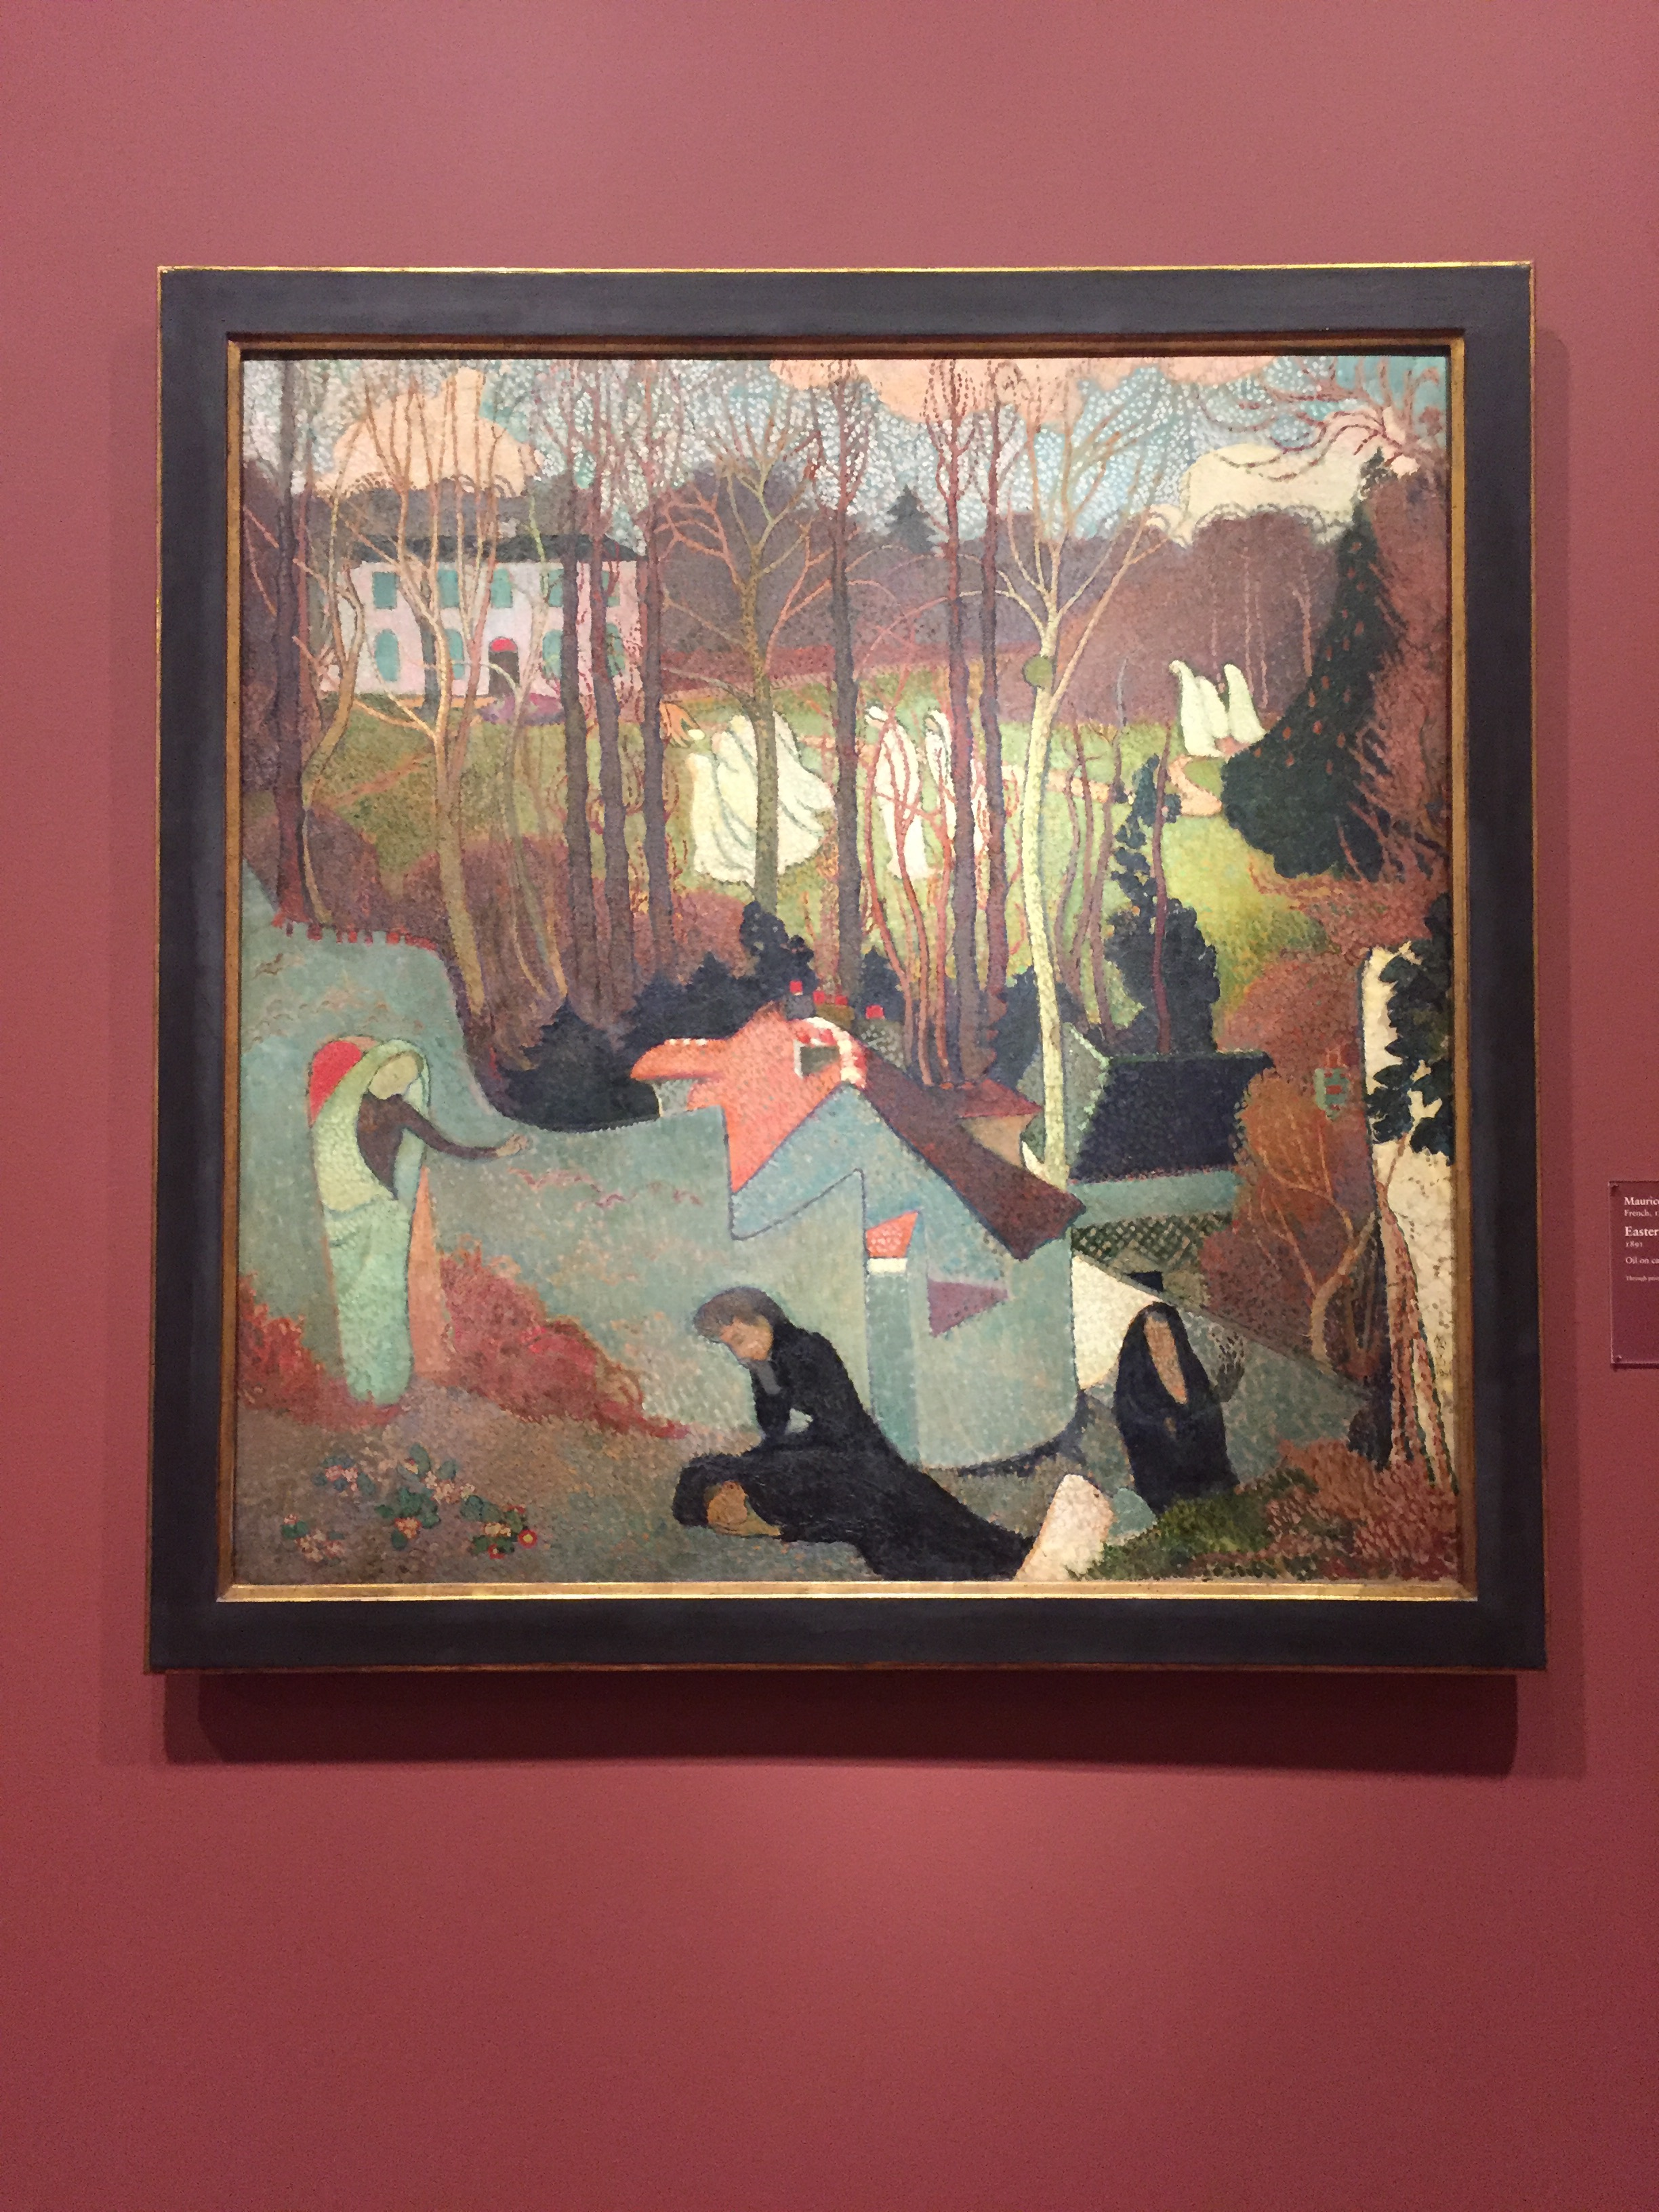 Easter Mystery, 1891, Maurice Denis. Oil on canvas. Wonderful use of green in the mid-ground. Winter is coming.